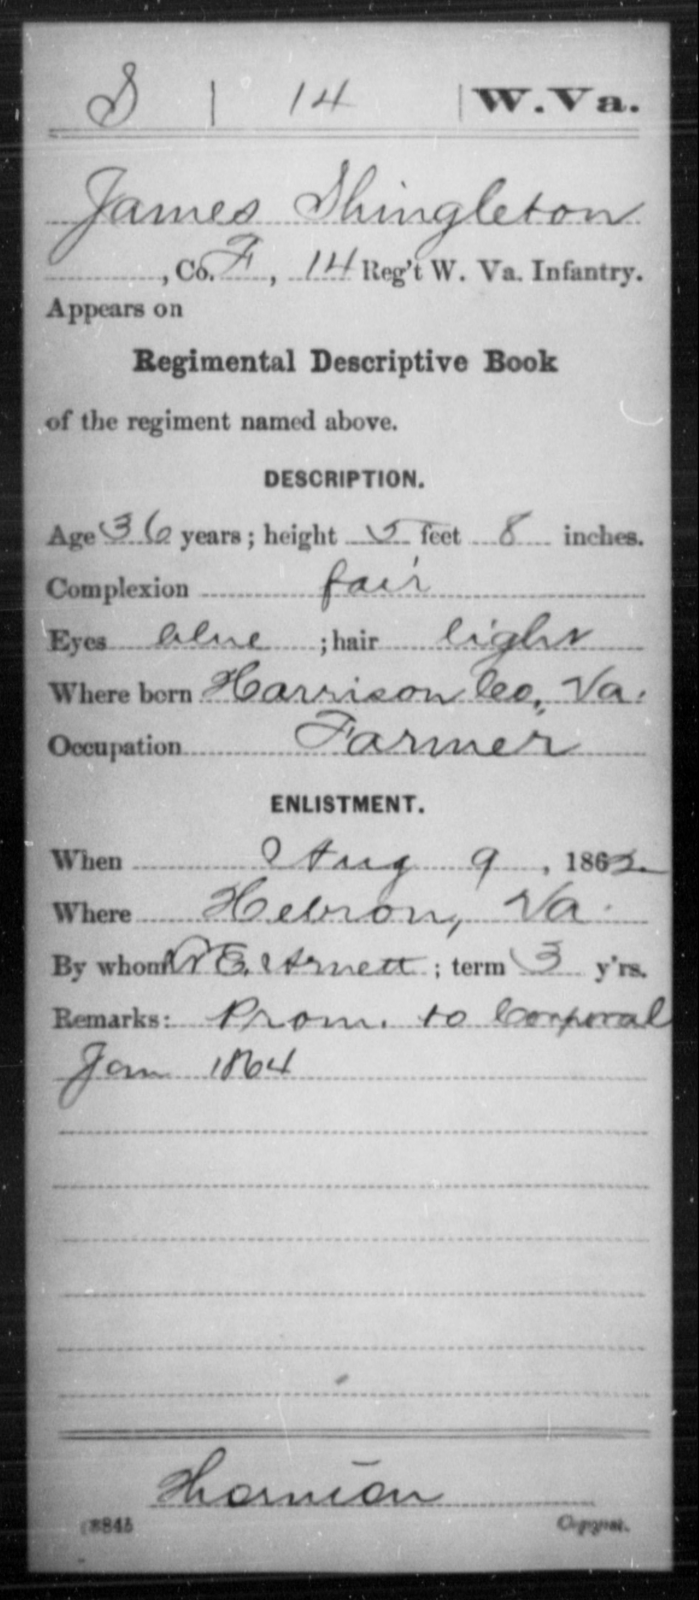 Shingleton, James - Age 36, Year: 1862 - Miscellaneous Card Abstracts of Records - West Virginia